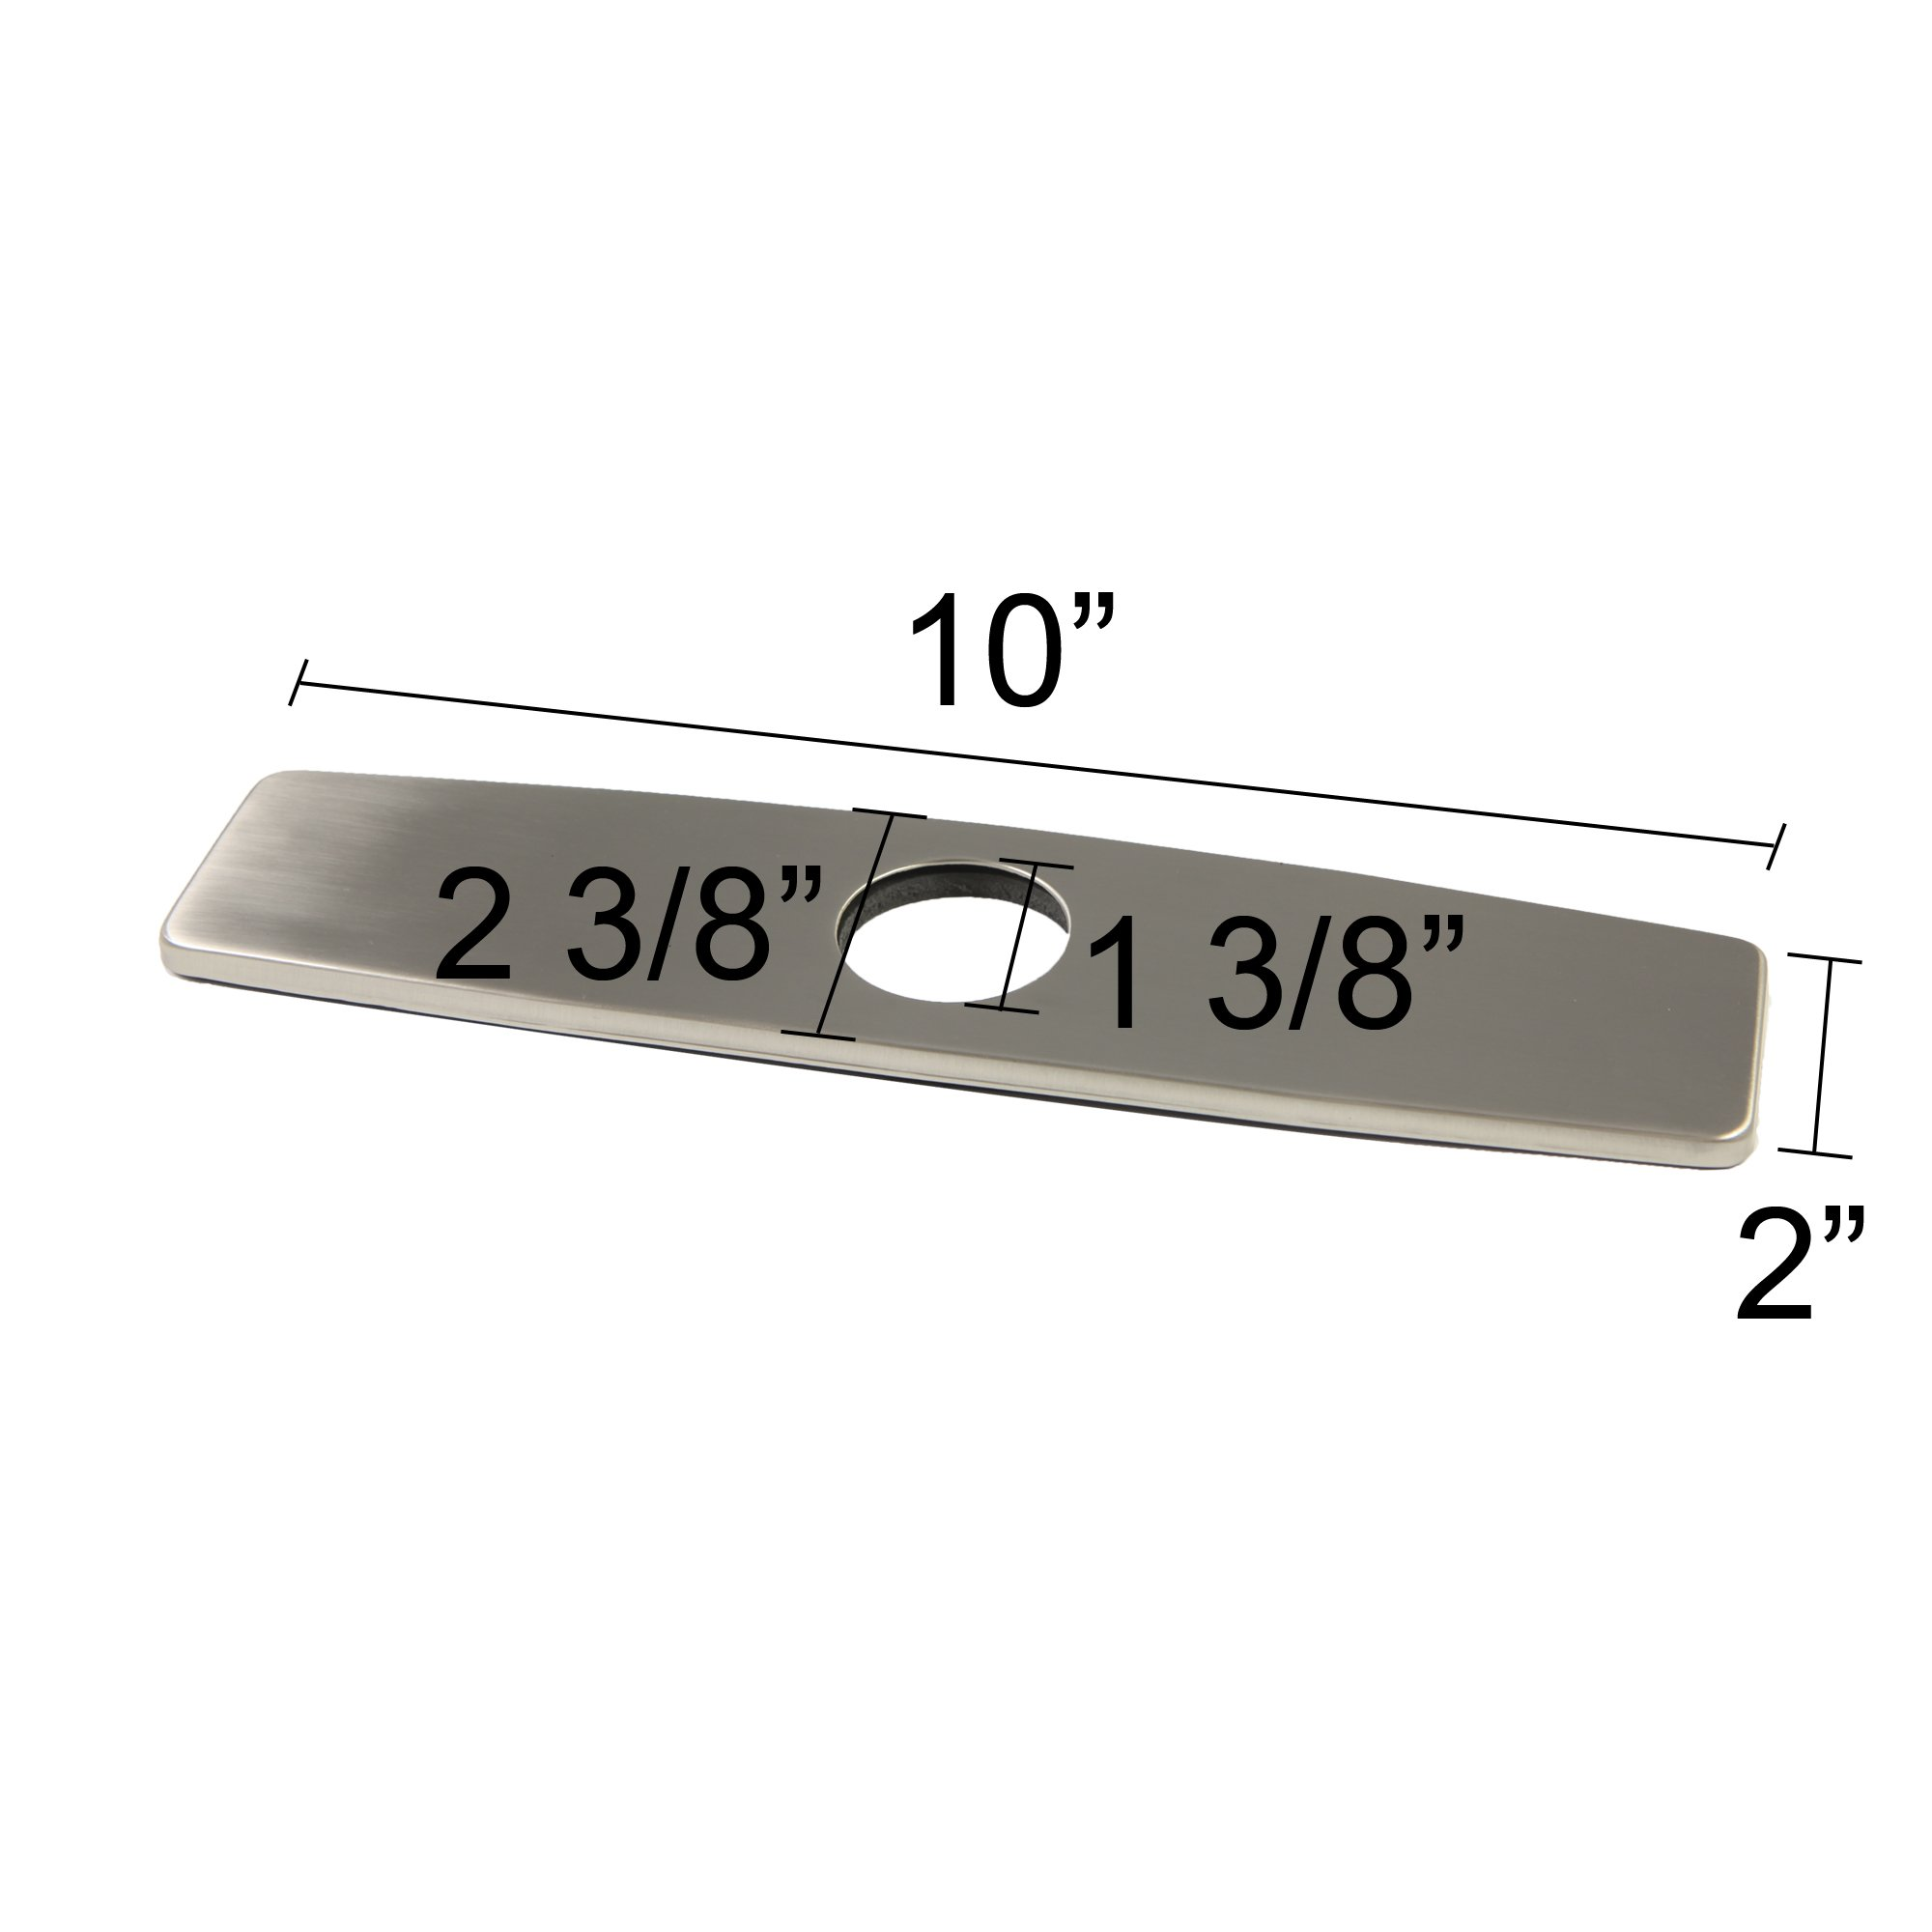 Decor Star PLATE-10B 10'' Kitchen Sink Faucet Hole Cover Deck Plate Escutcheon Brushed NickeL by Decor Star (Image #2)